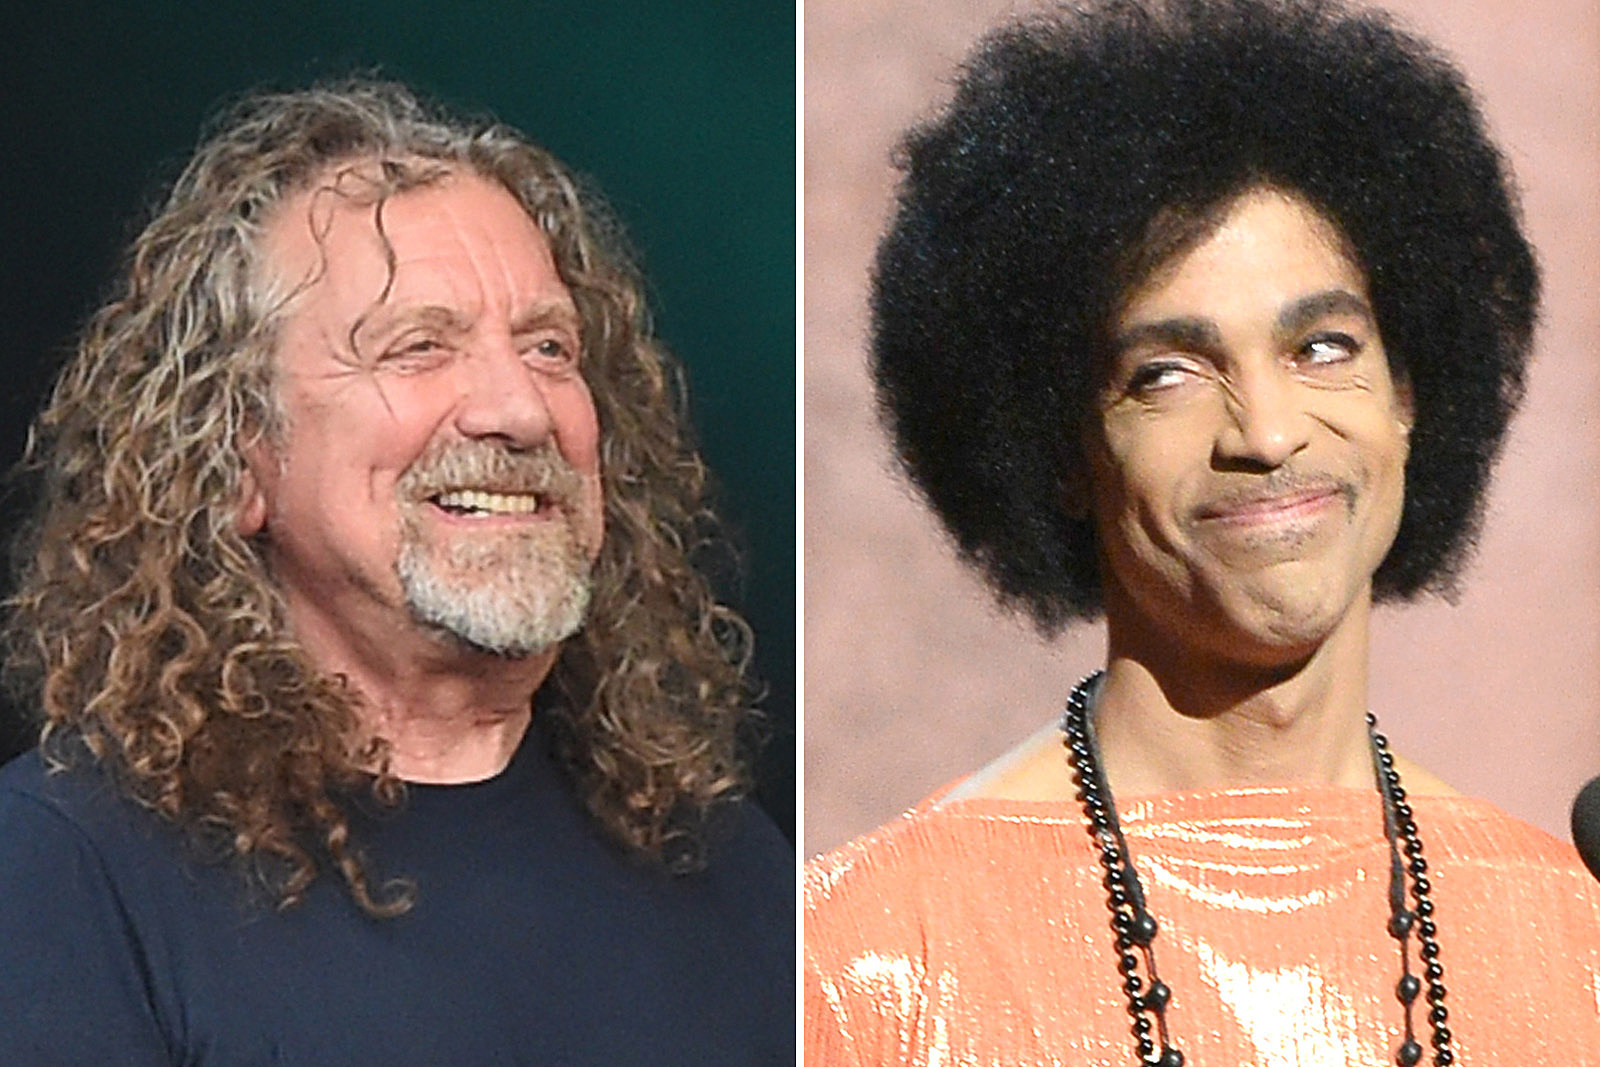 How Robert Plant and Prince Shared a Whole Lotta Love